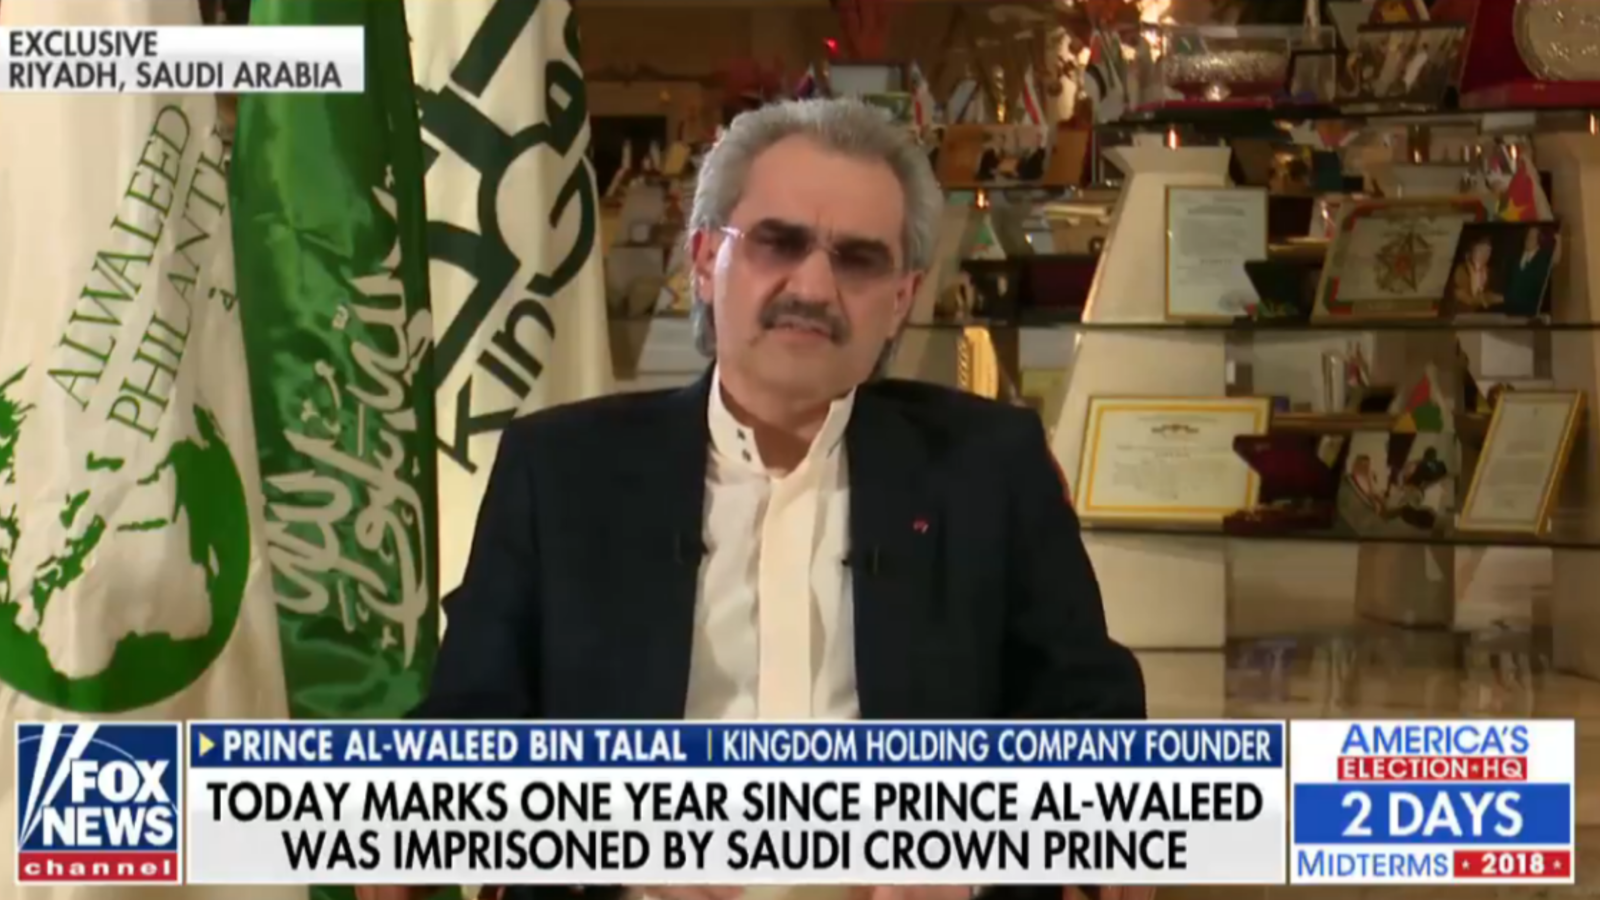 Prince Al Waleed bin Talal was one of the richest Arab men in the world before he was detained as part of the MBS crackdown on businessmen in 2017.